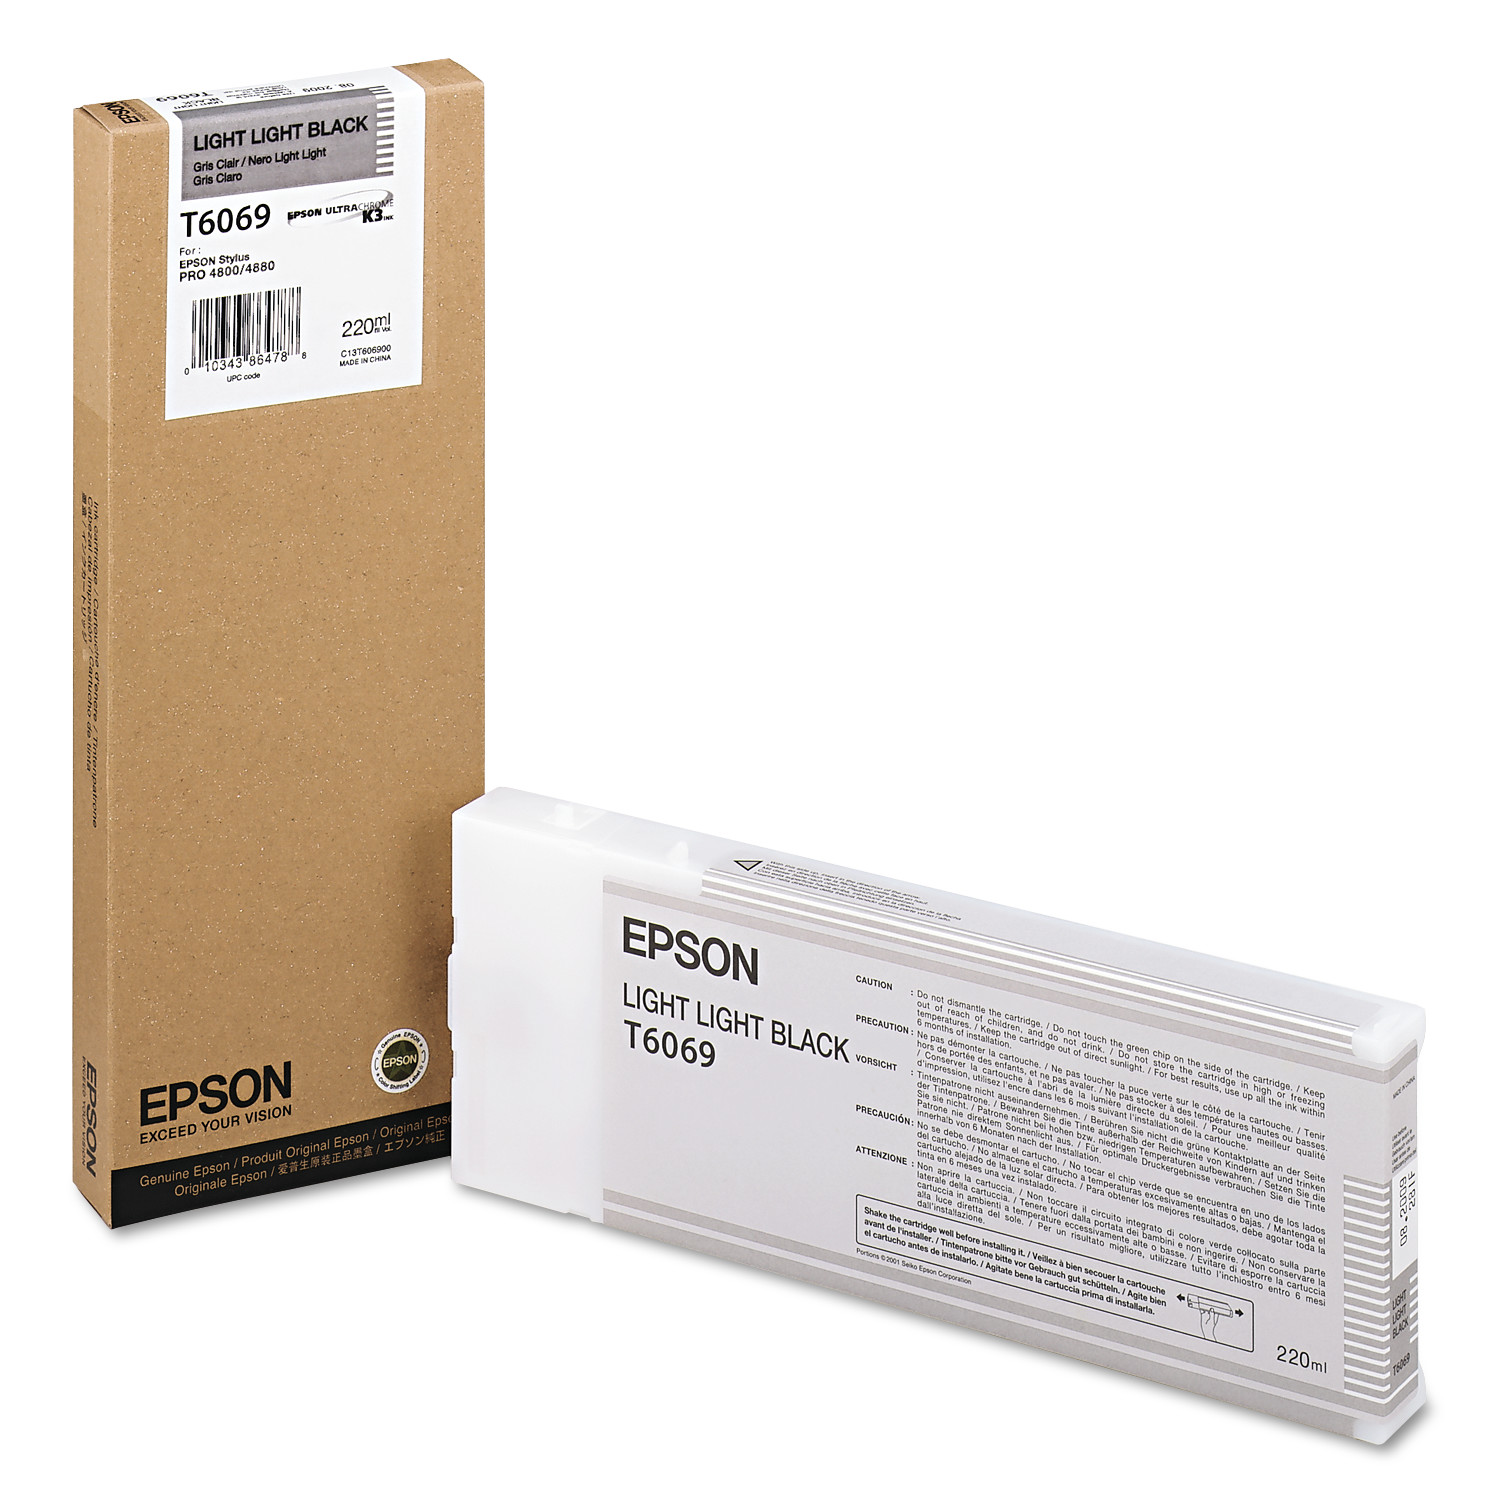 Epson T606900 (60) Ink, Light Light Black